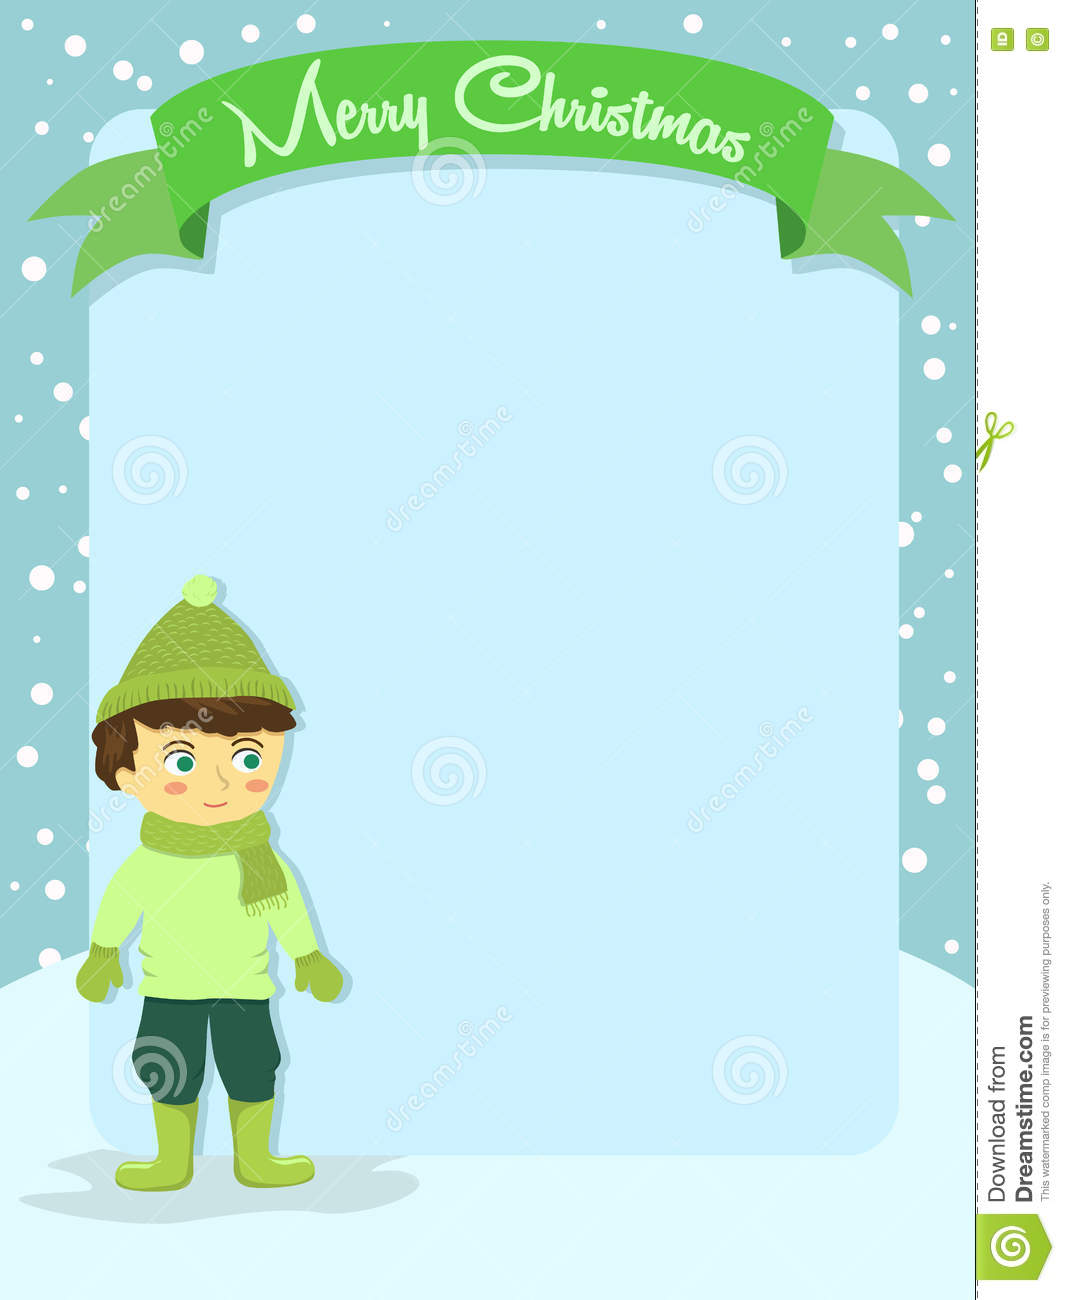 Merry christmas boy banner greeting card stock vector merry christmas boy banner greeting card kristyandbryce Choice Image